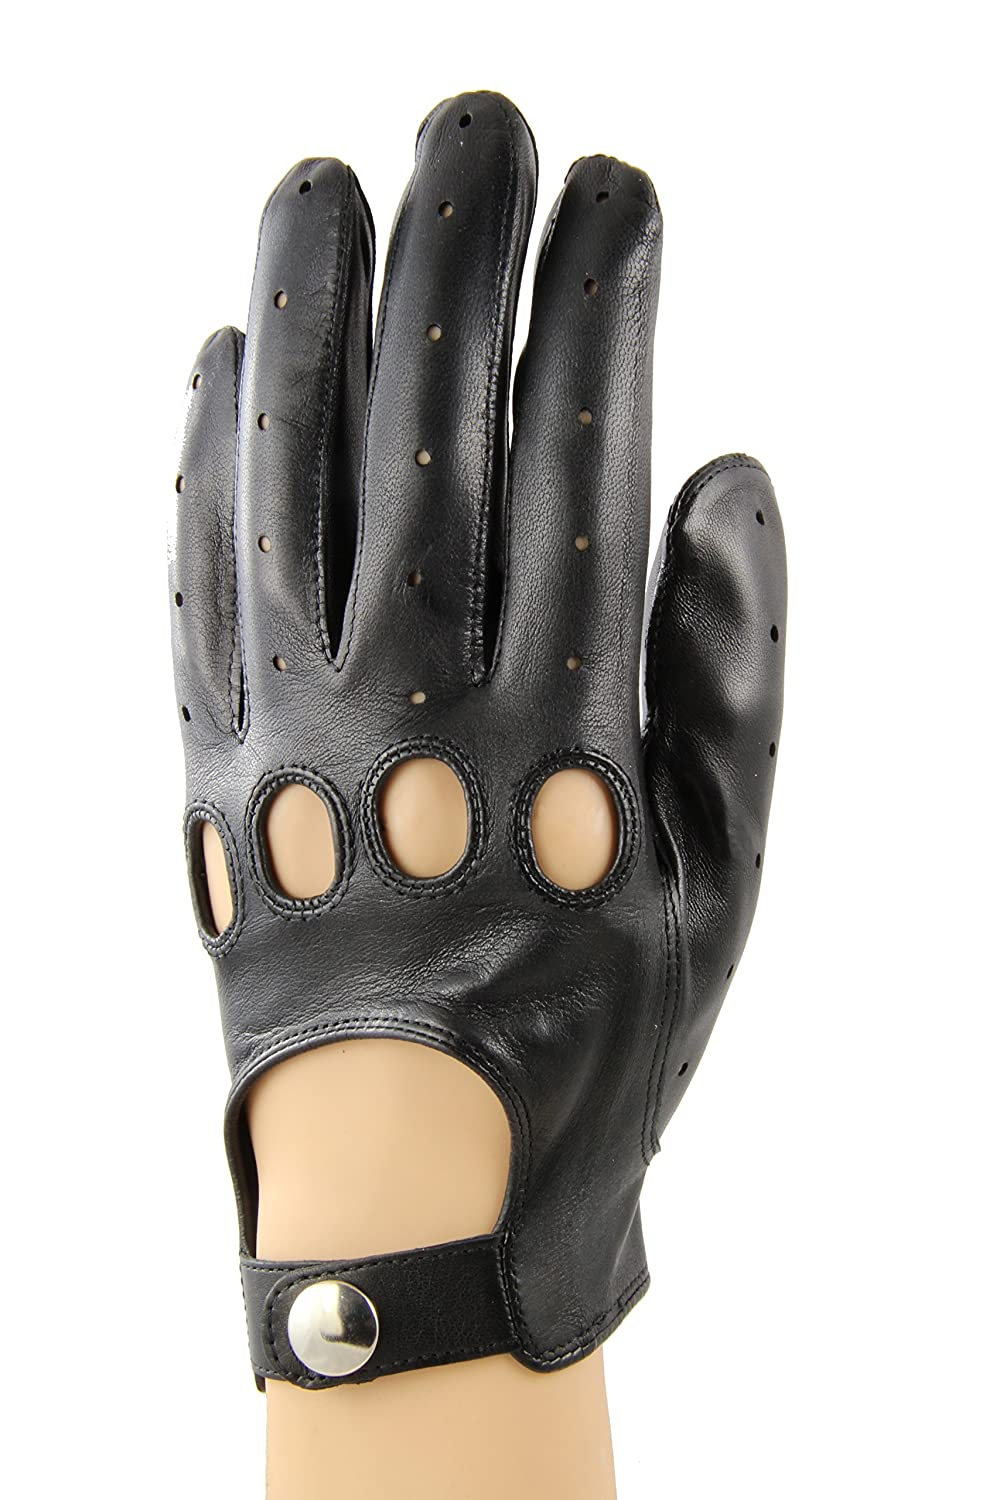 Gaspar leather driving gloves - Gaspar Men S Driving Gloves Featured In The Movie Drive Starring Ryan Gosling At Amazon Men S Clothing Store Cold Weather Gloves